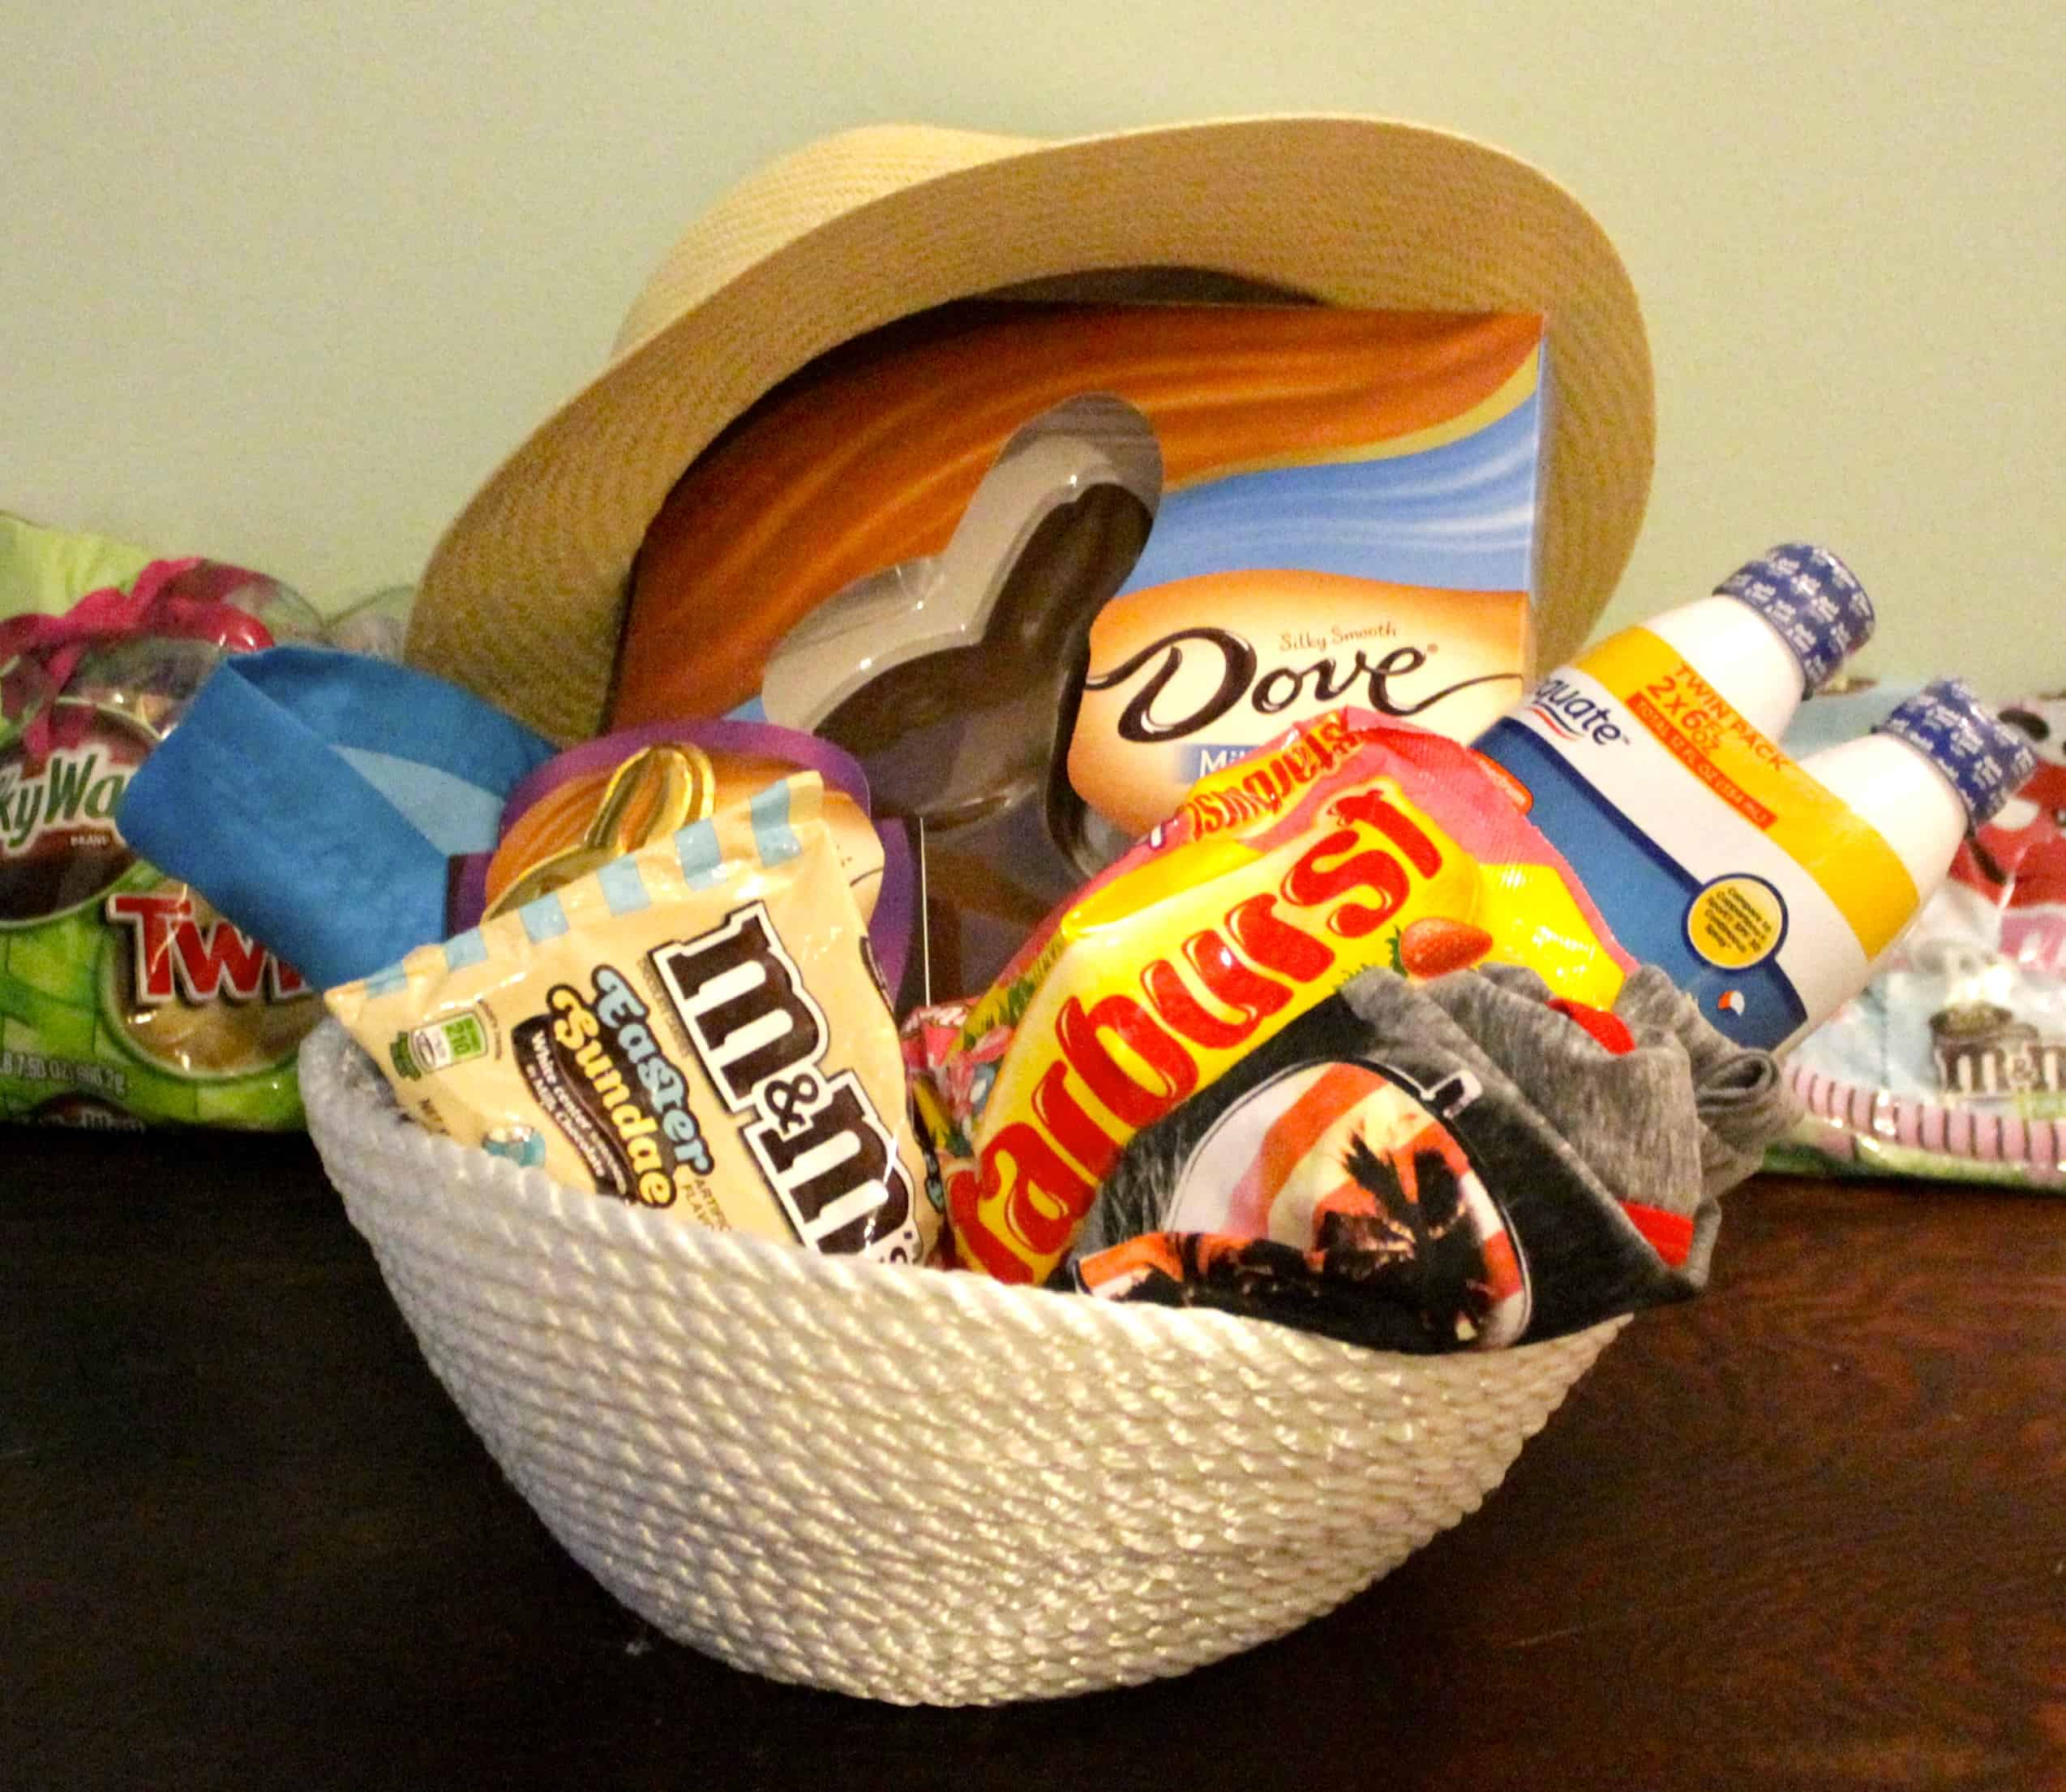 Diy rope bowl tutorial a coastal easter basket for him diy rope bowl tutorial a coastal easter basket for him charleston crafted negle Choice Image